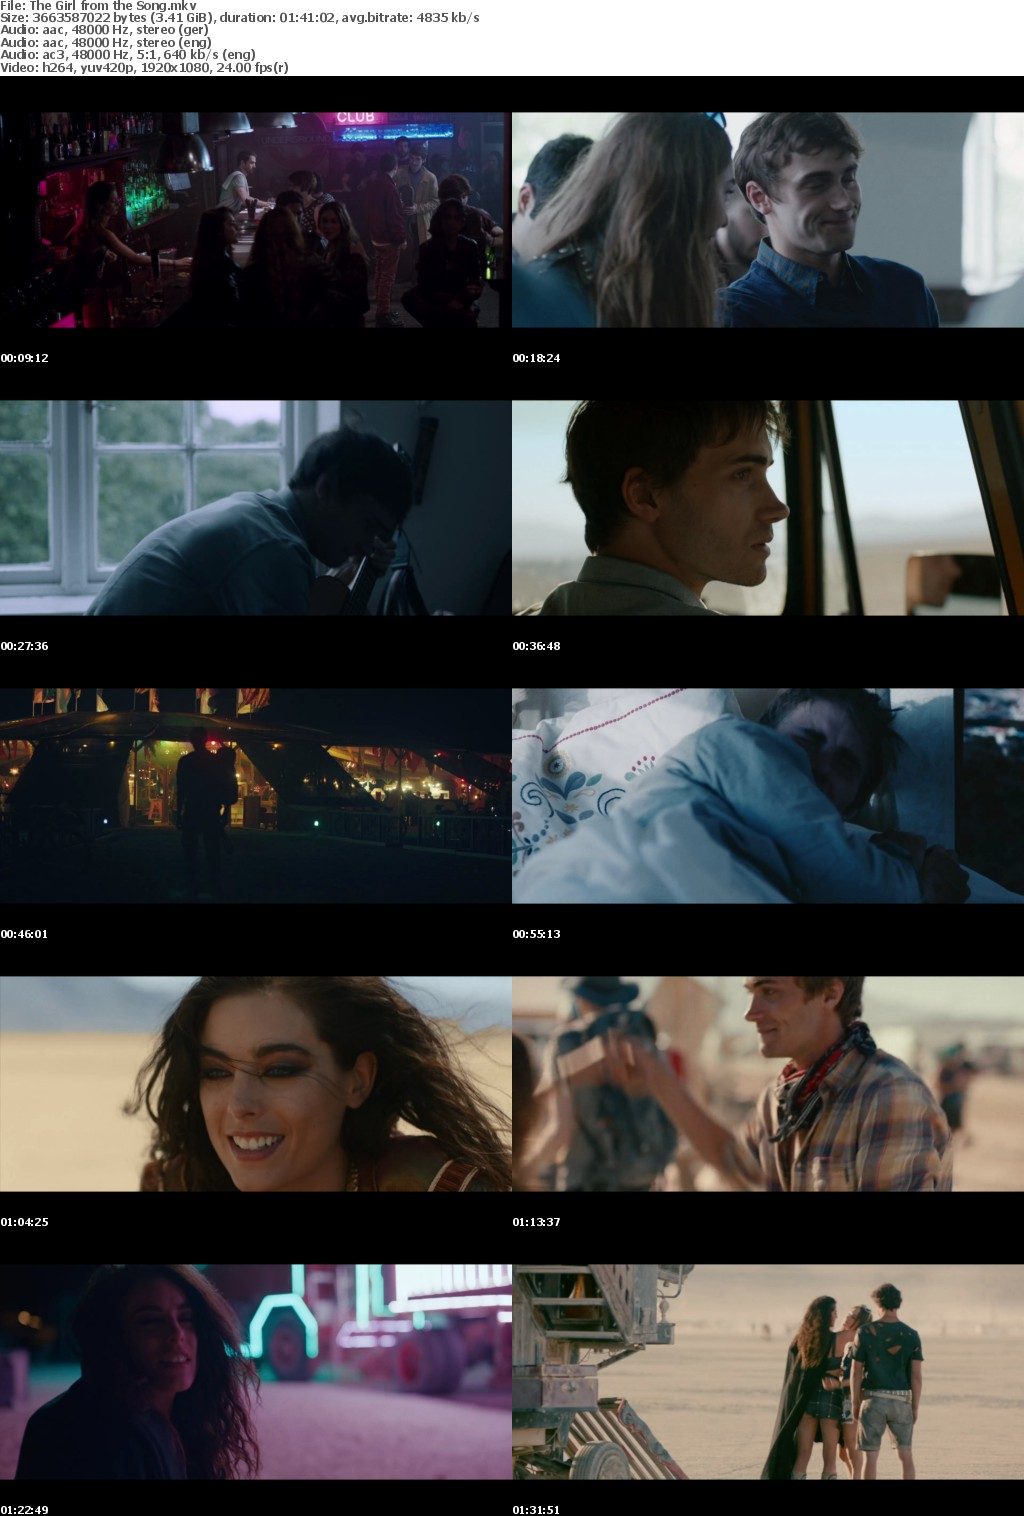 The Girl From the Song 2017 1080P WebDL x264 DDP5 1 WildBrian